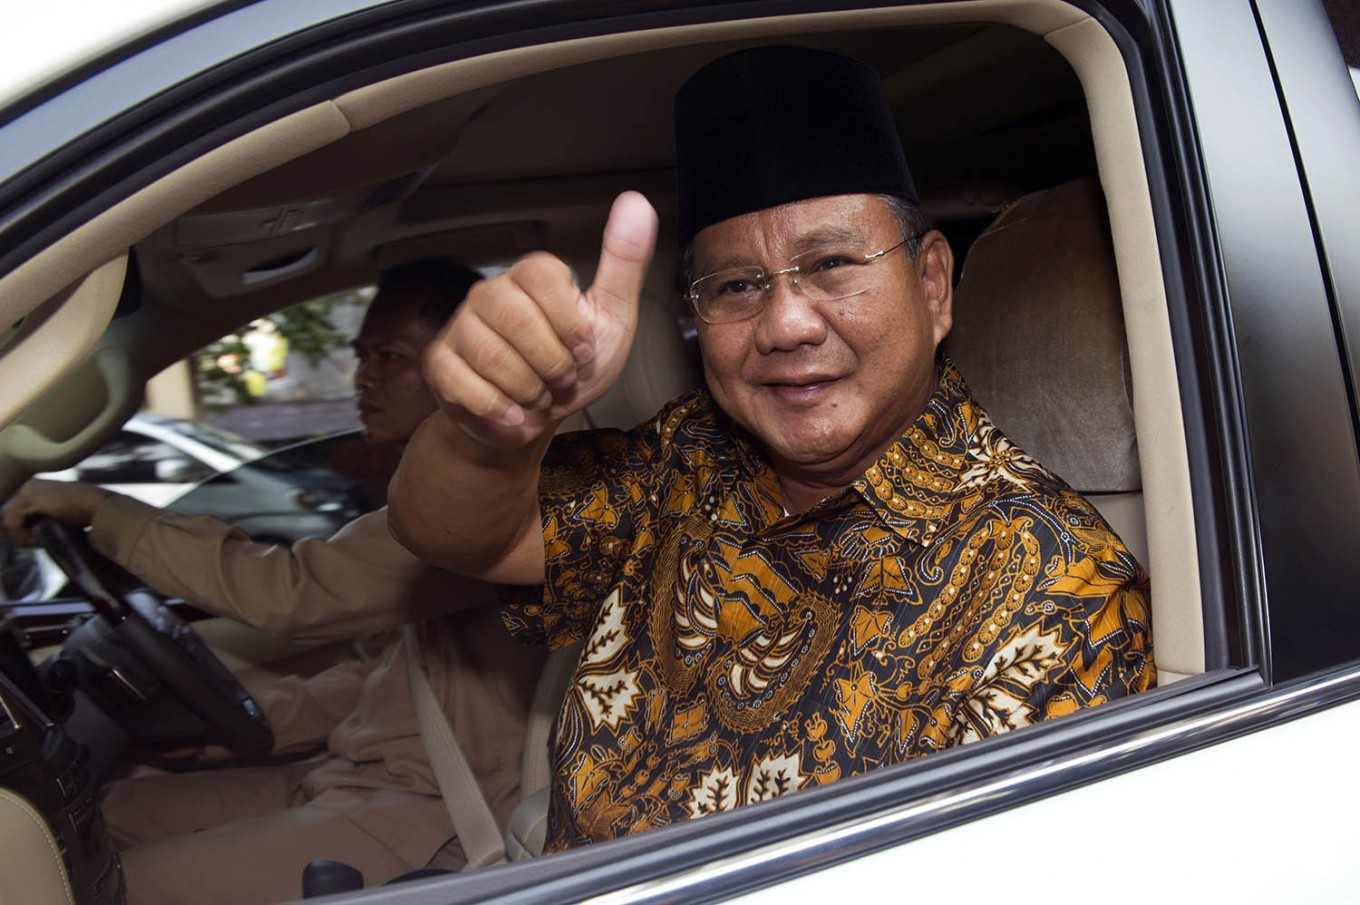 #SaveMukaBoyolali: Prabowo's joke rubs Boyolali people the wrong way